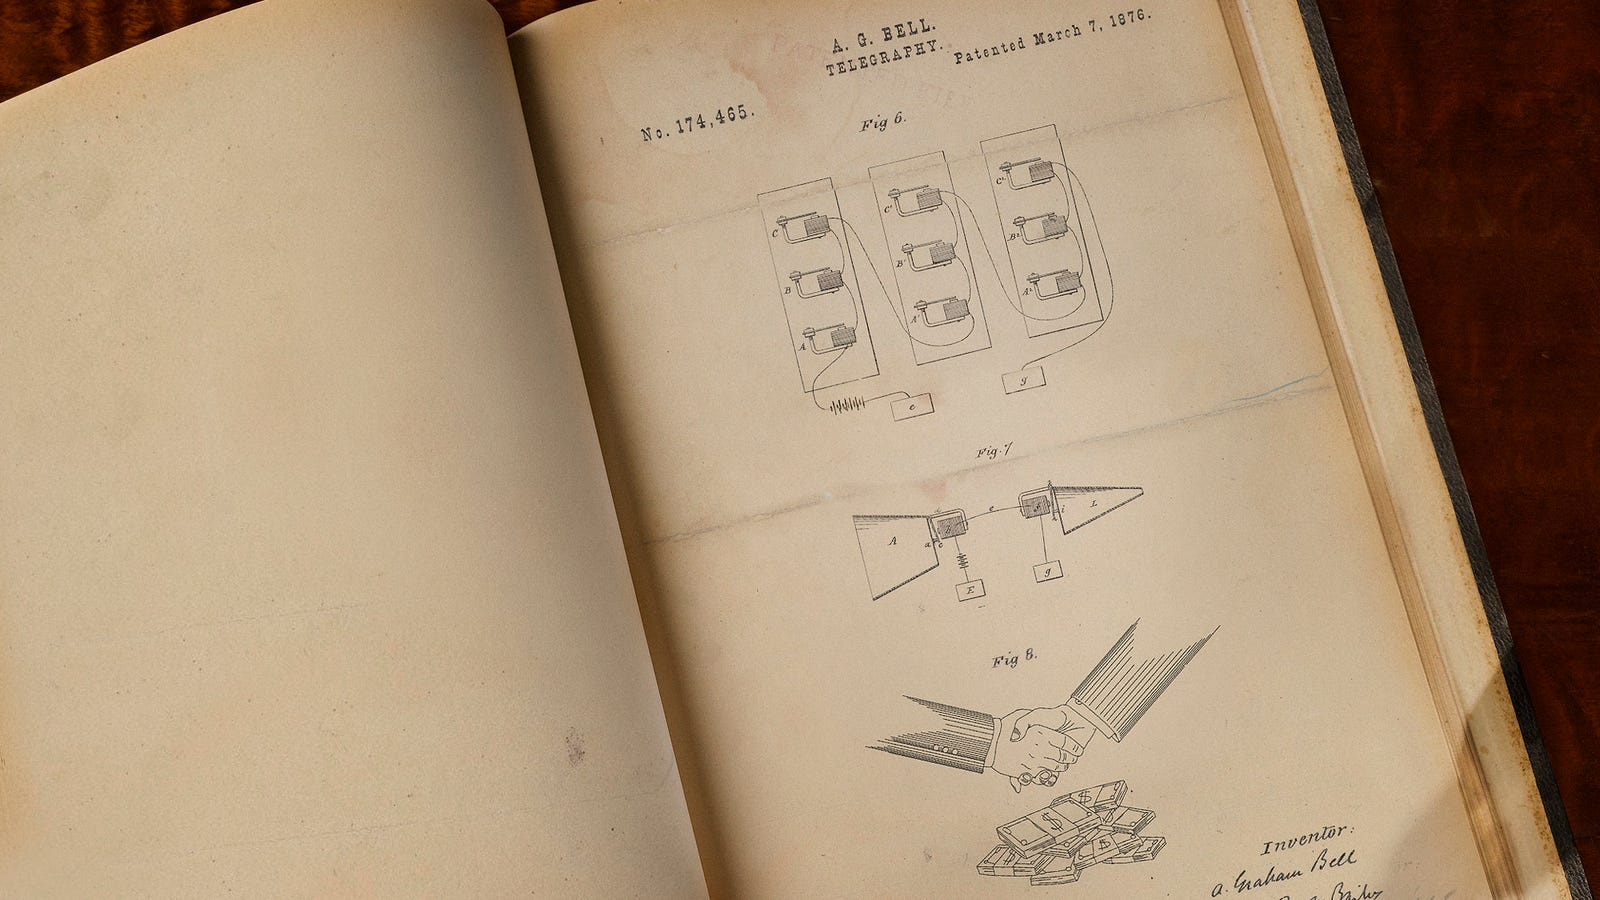 Newly Uncovered Journals Reveal Alexander Graham Bell Invented Telephone As First Step In Consolidating All American Businesses Into Single Monopoly